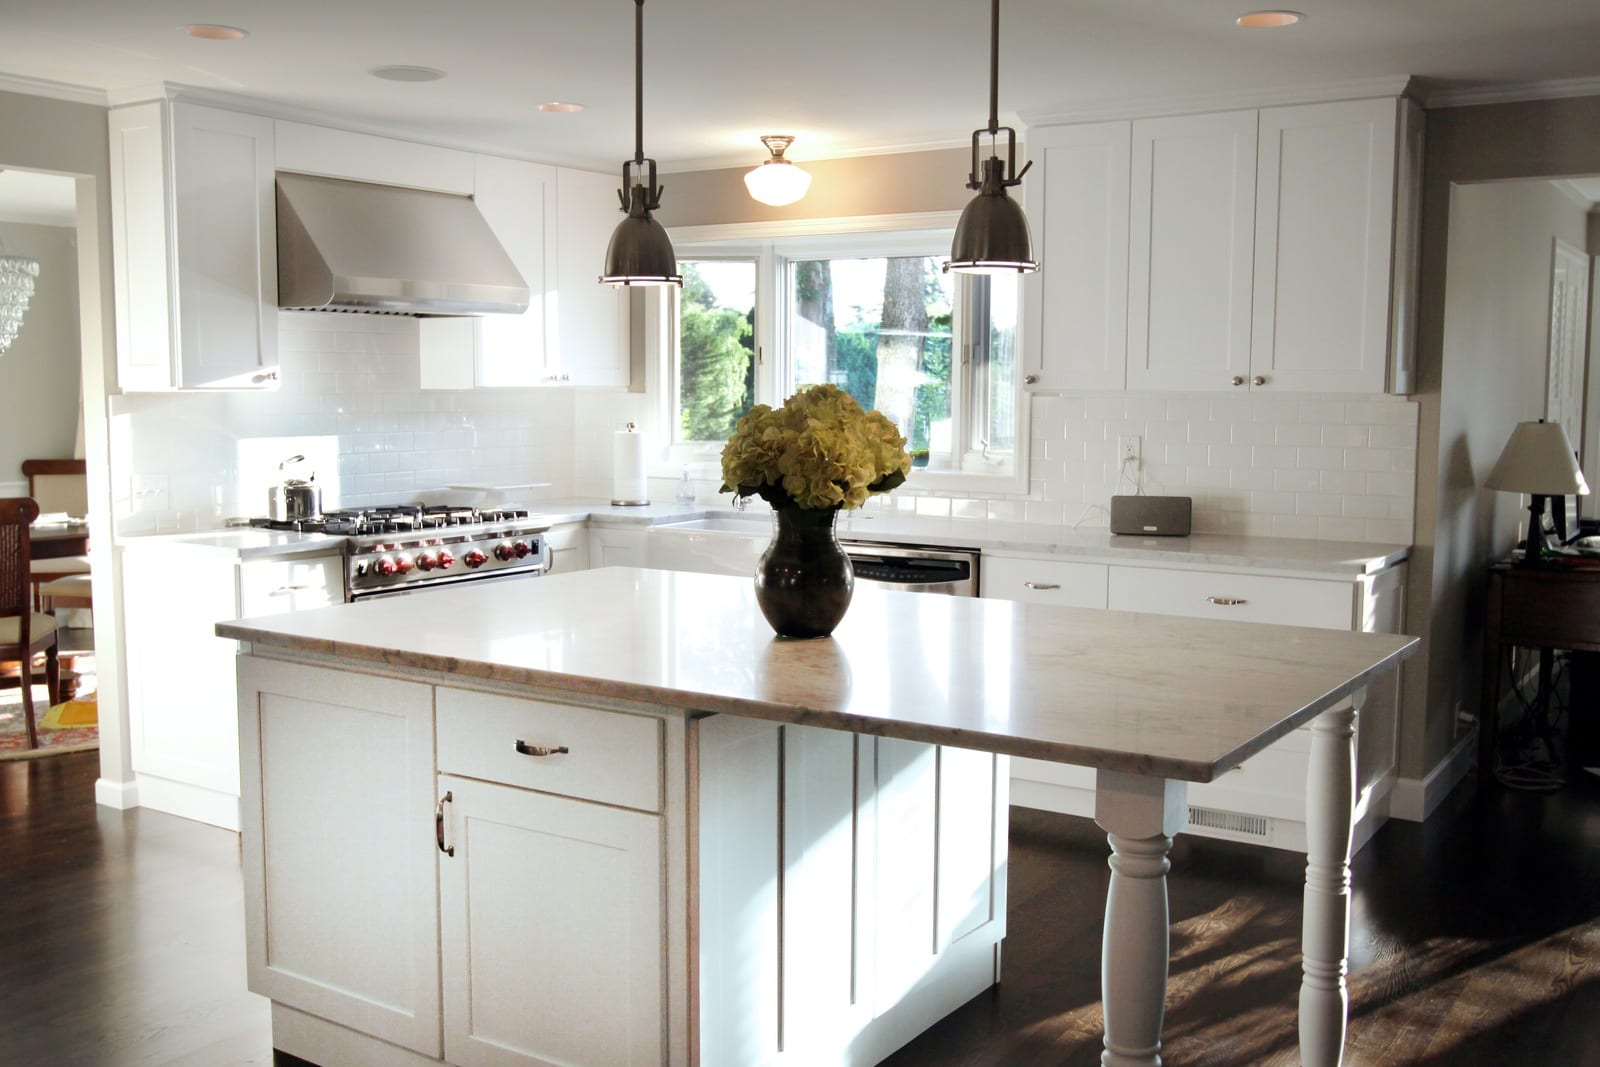 White Shaker Kitchen With Island And Cabi s on cabinet door construction